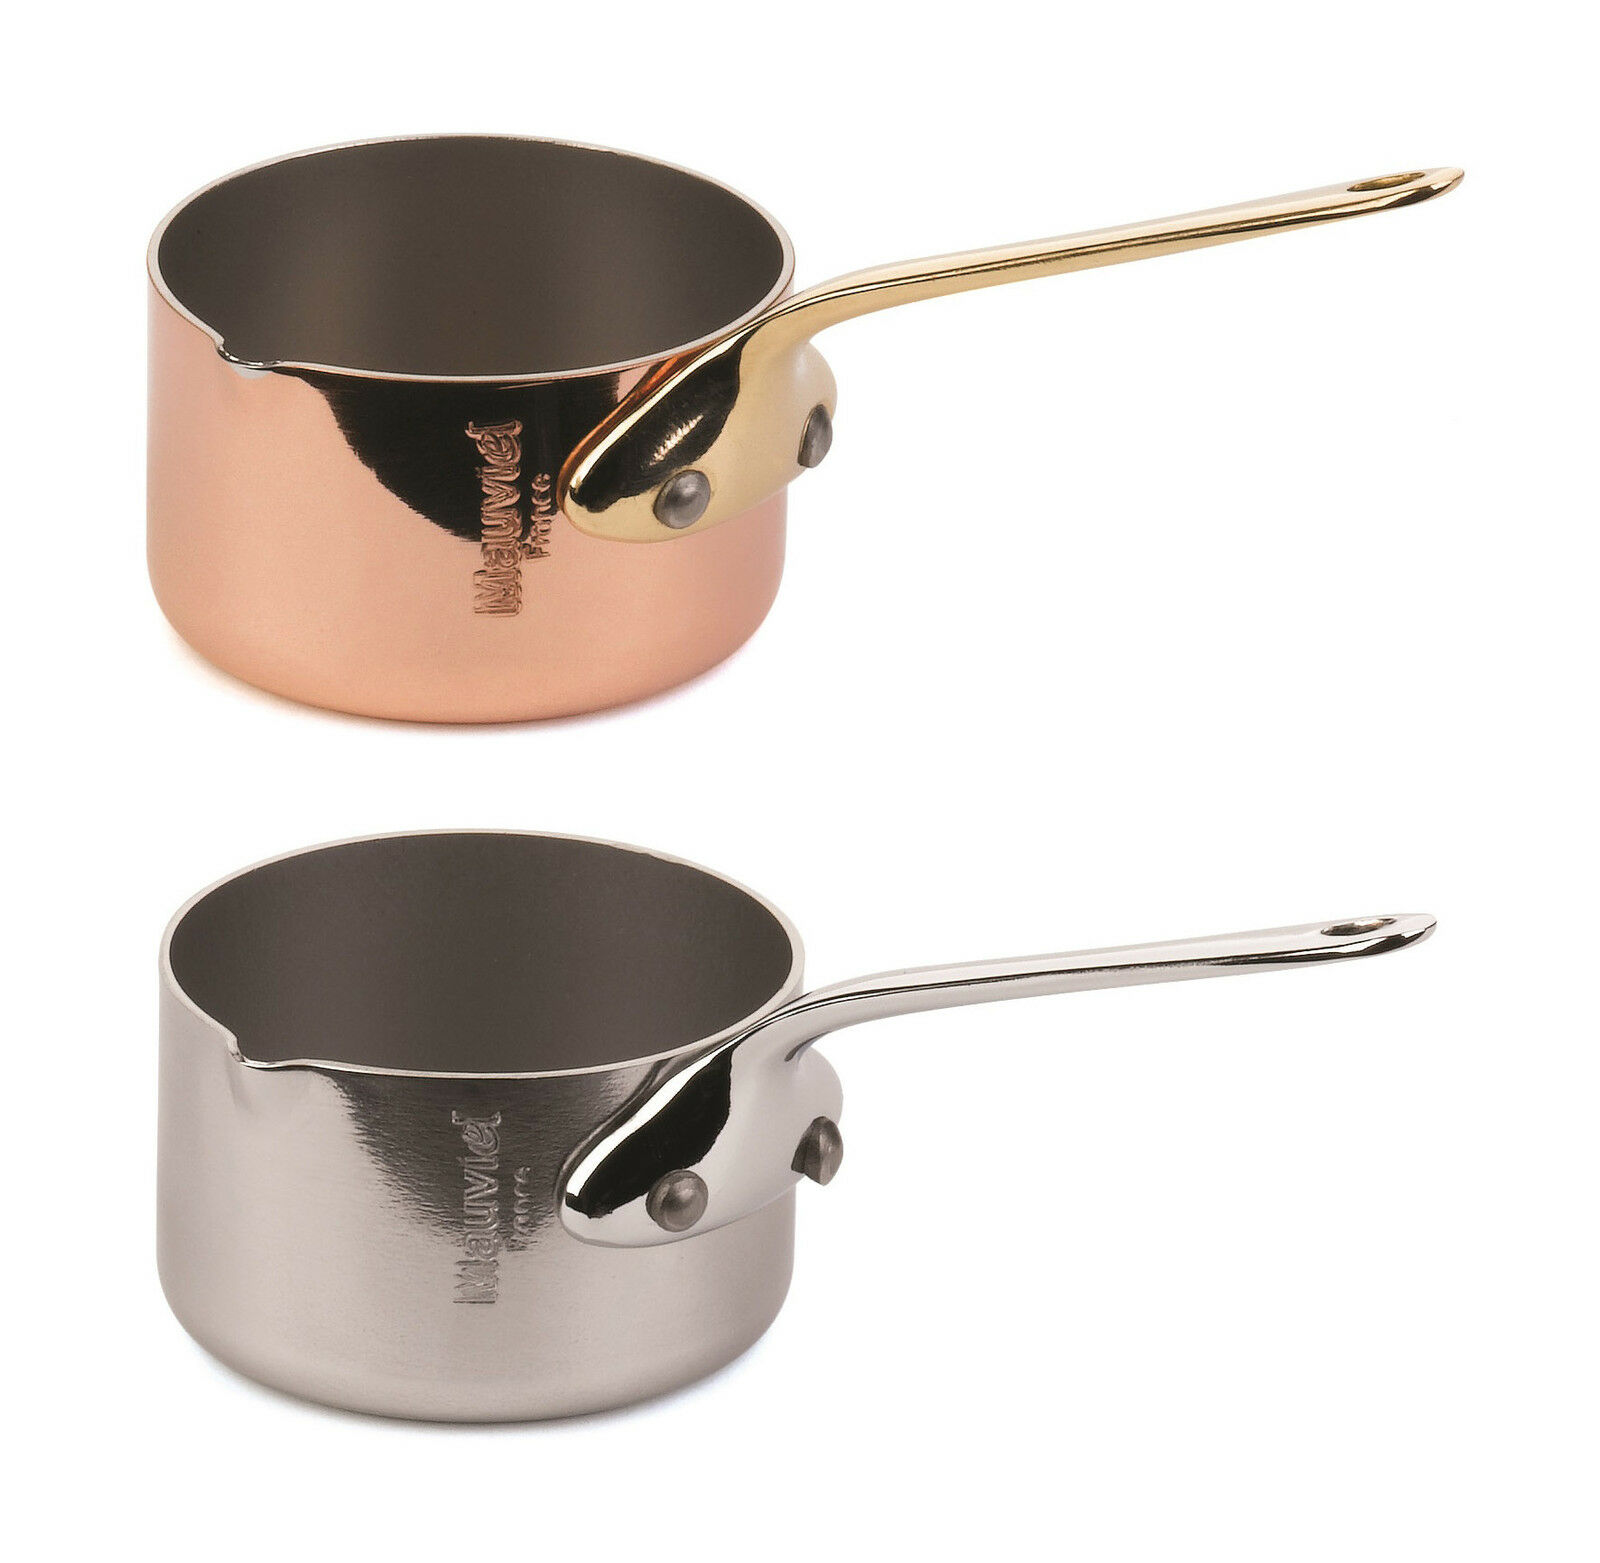 Mauviel Minis Copper Stainless Steel Handle Saucepan 5cm with Pouring Lip